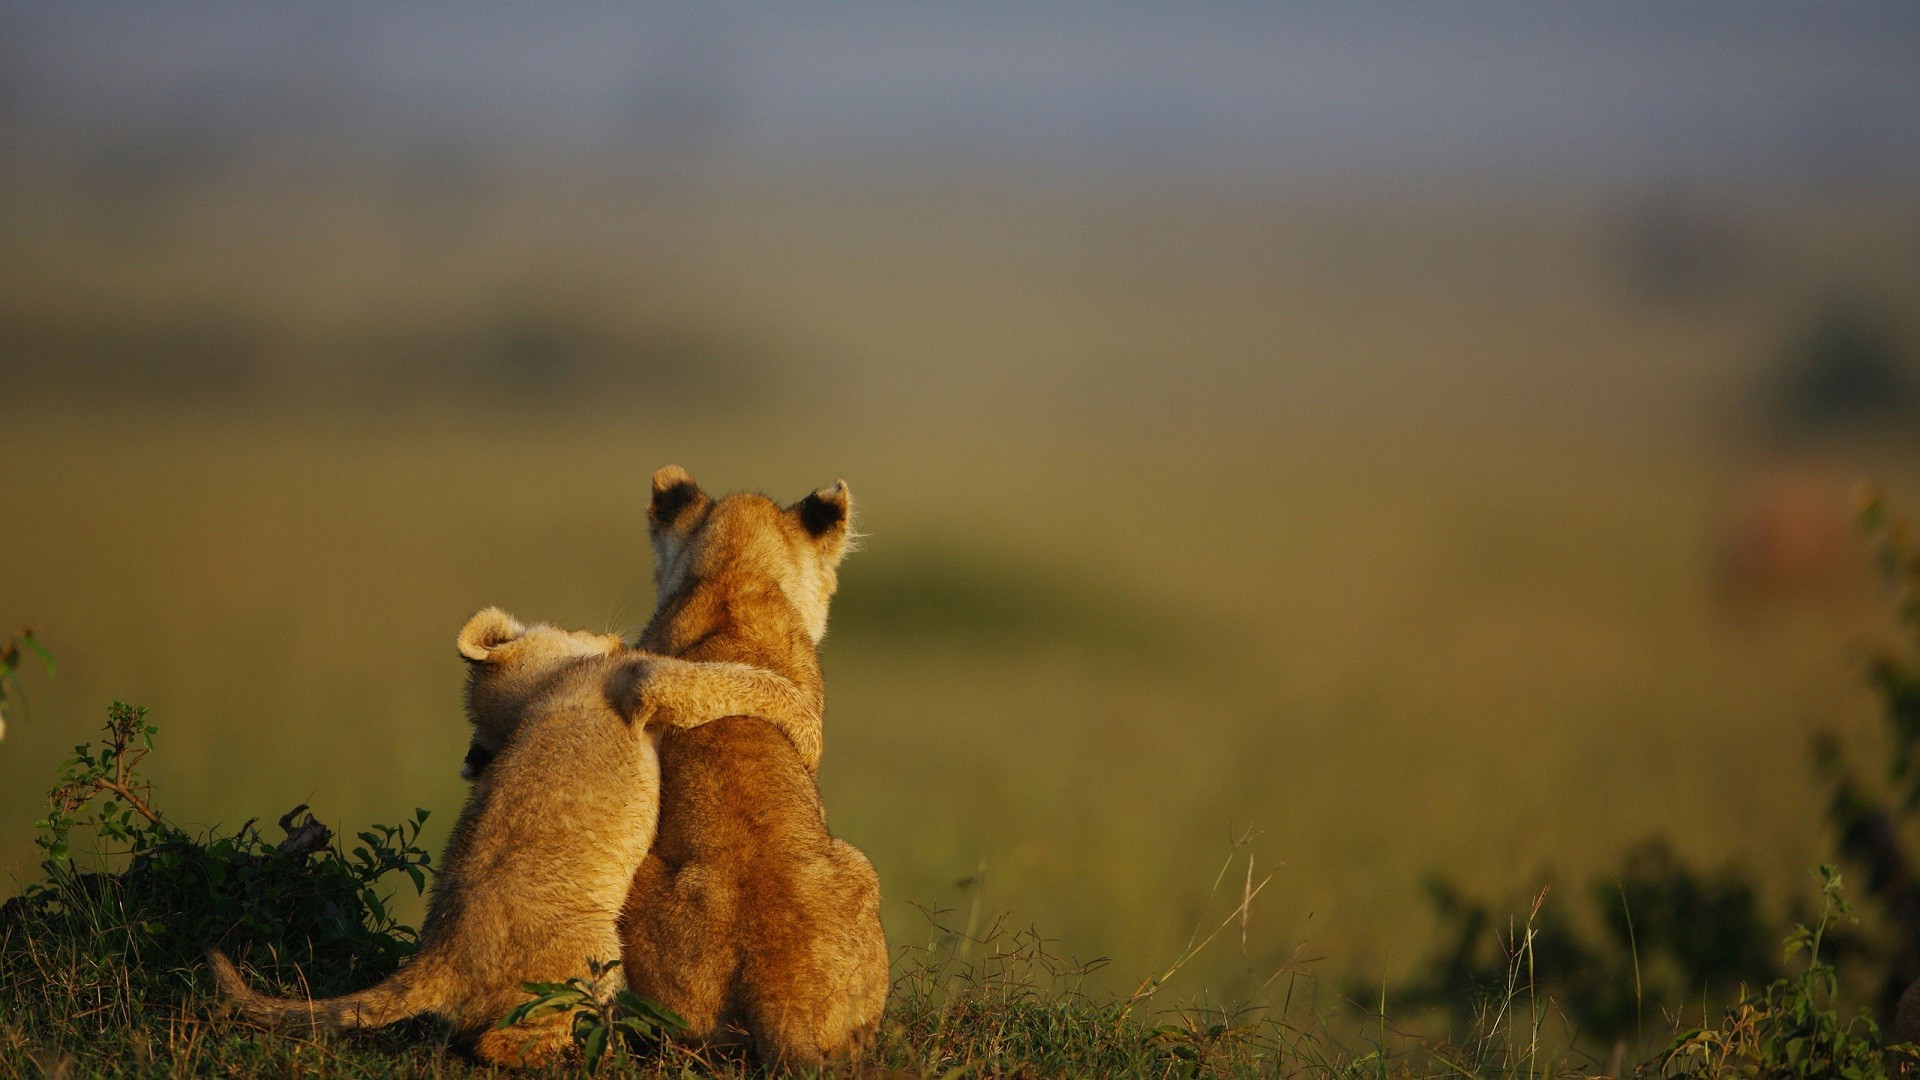 3d Lion Mobile Wallpaper Hugging Animals Baby Animals Lion Nature Wallpapers Hd